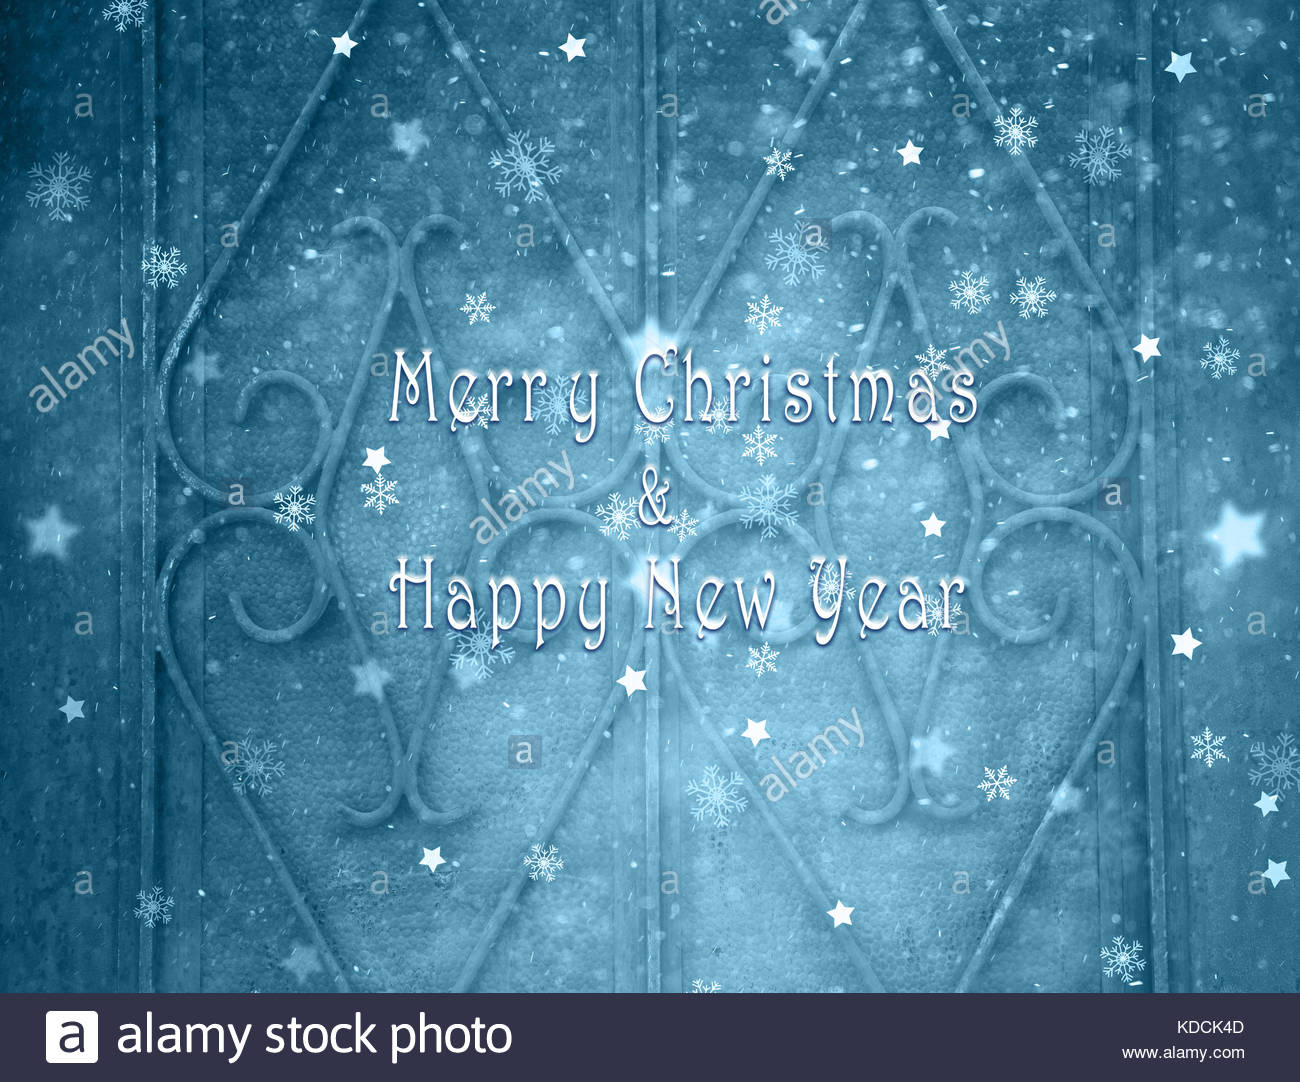 Merry Christmas And Happy New Year Greeting Card Message On Old